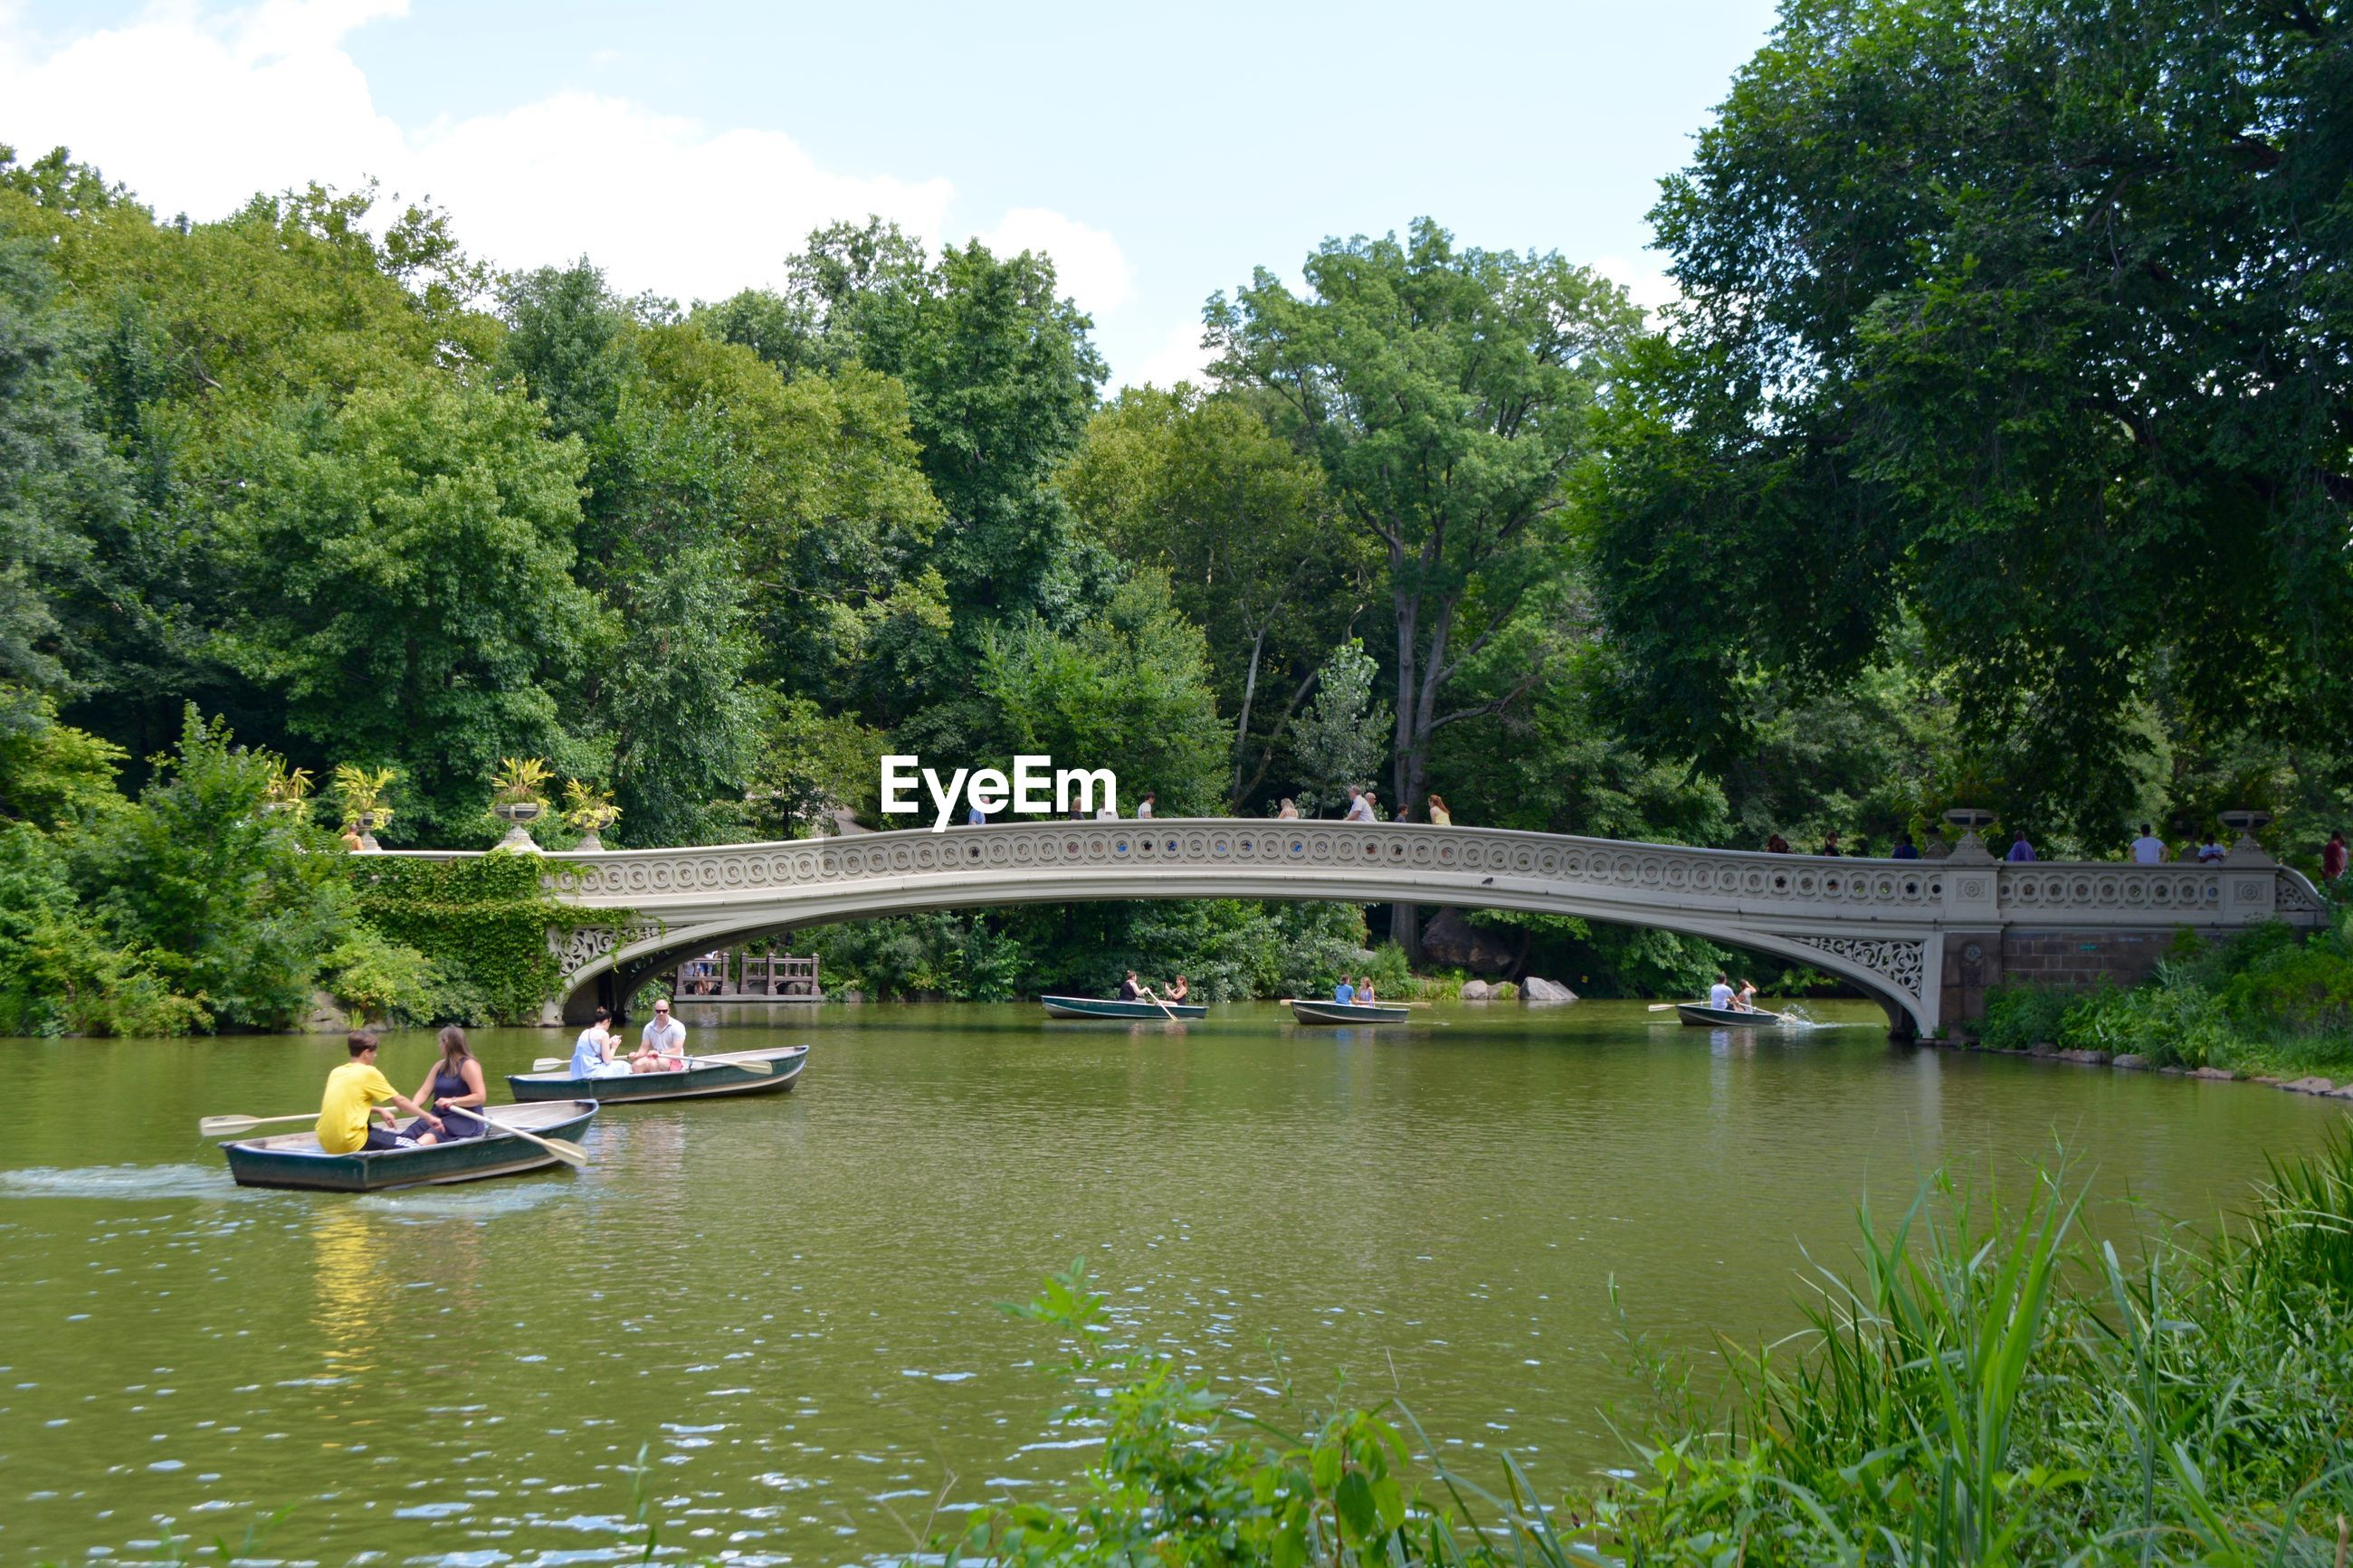 VIEW OF BRIDGE OVER RIVER AGAINST TREES